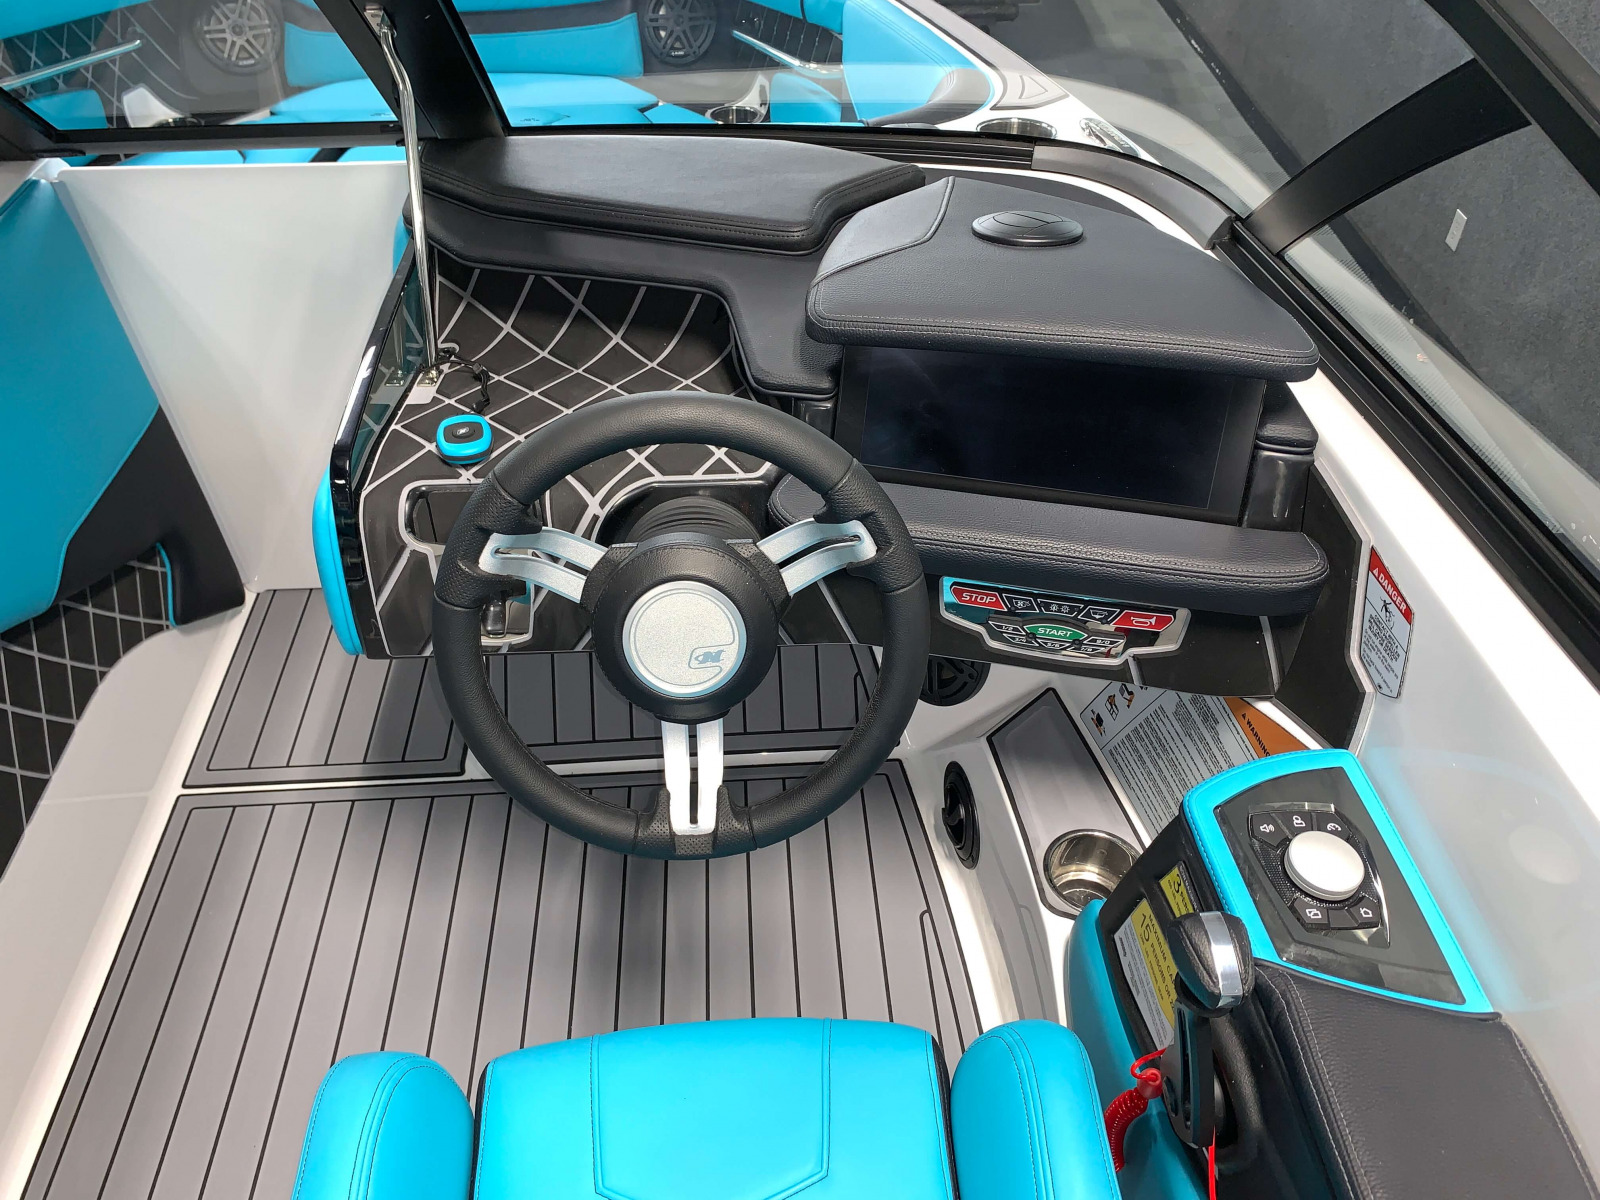 Helm of the 2021 Nautique GS22 Wake Boat